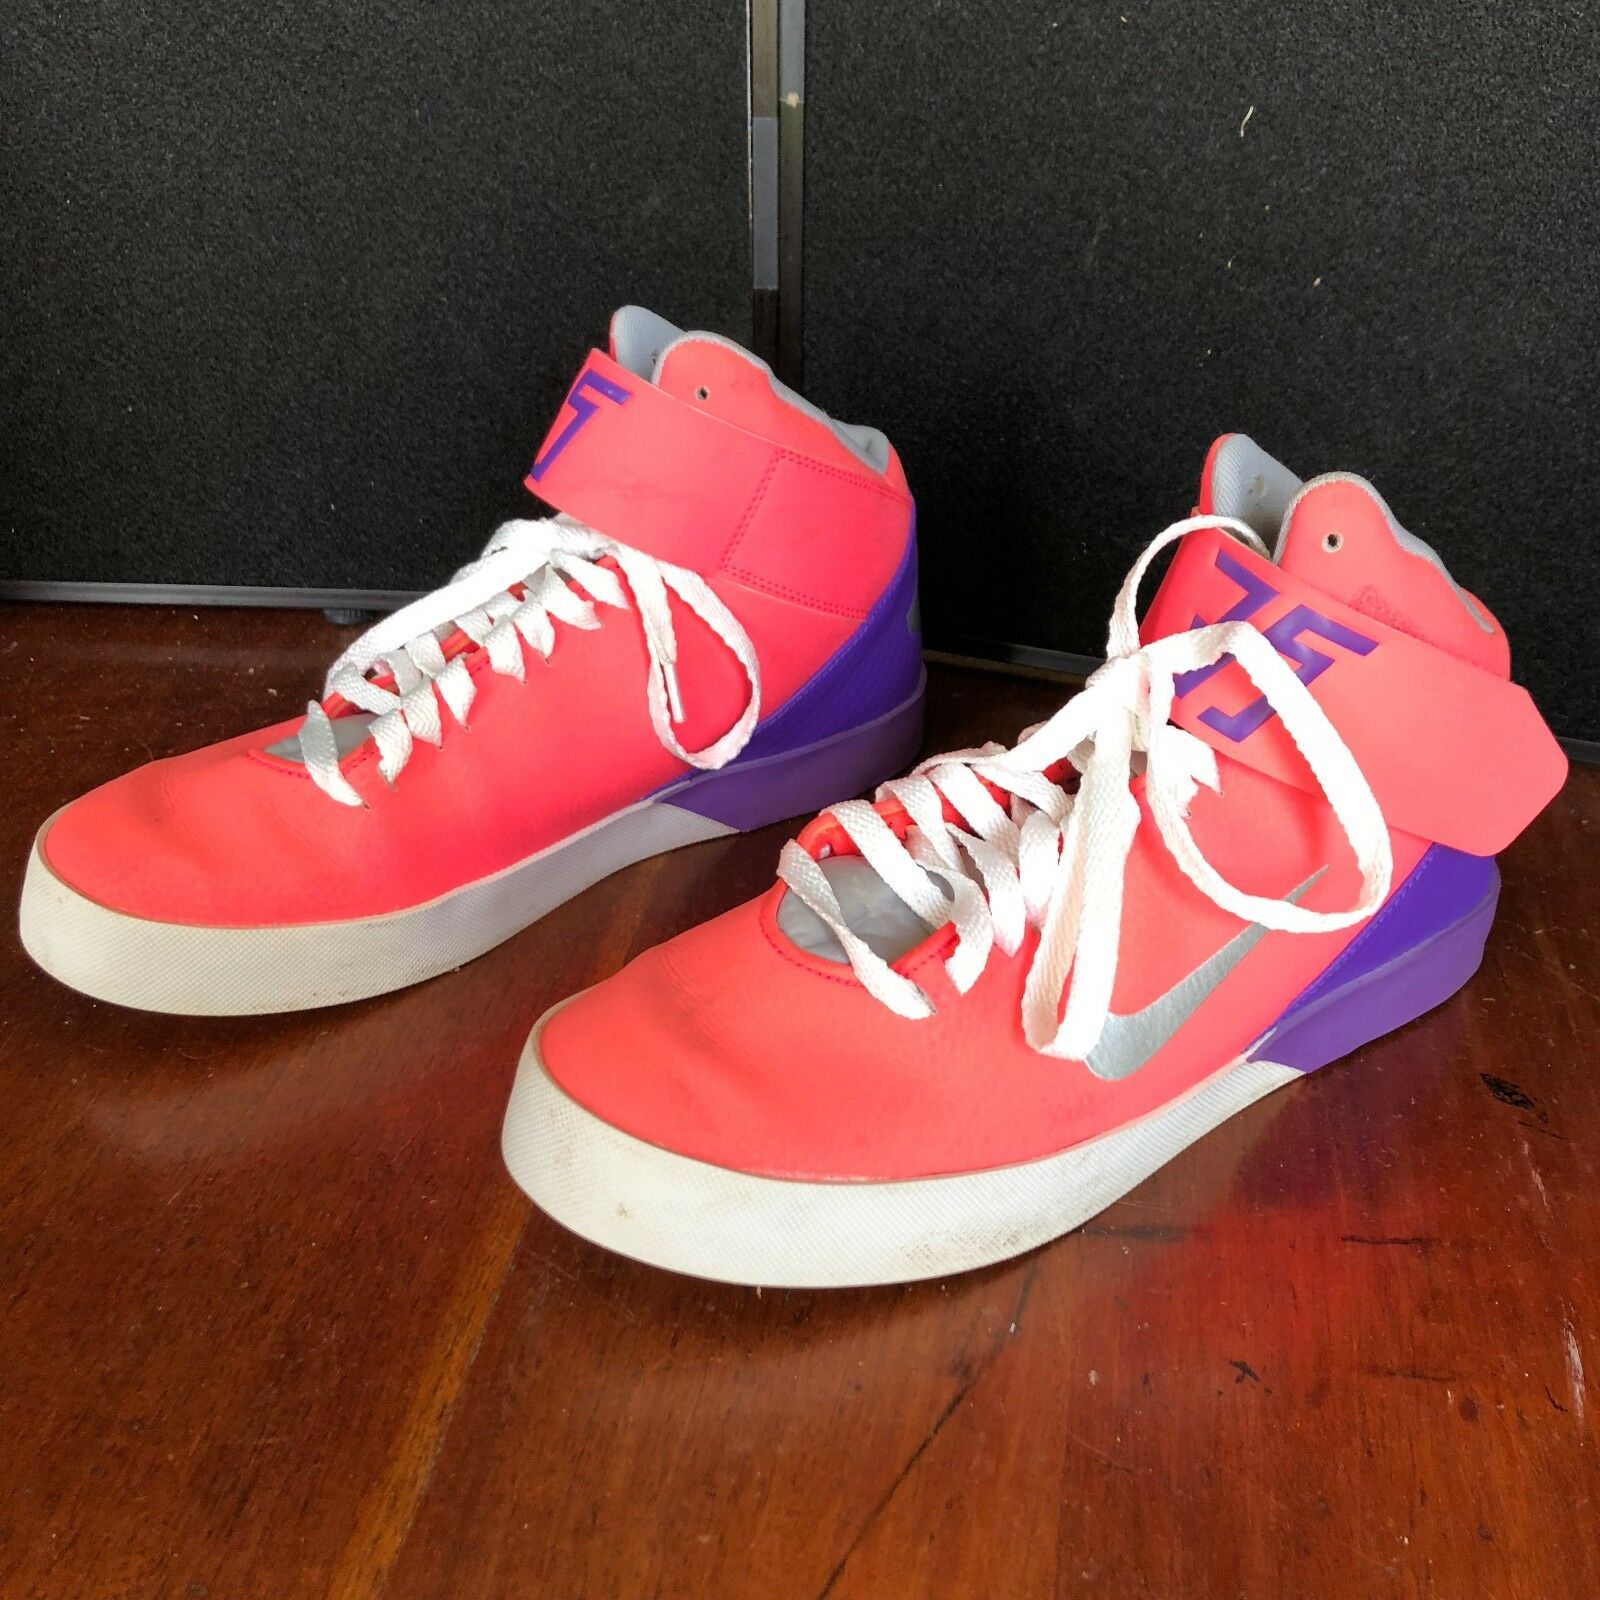 ab91ef77a Nike Nike Nike KD 35 shoes SIZE 7Y style 685495-600 color pink and purple